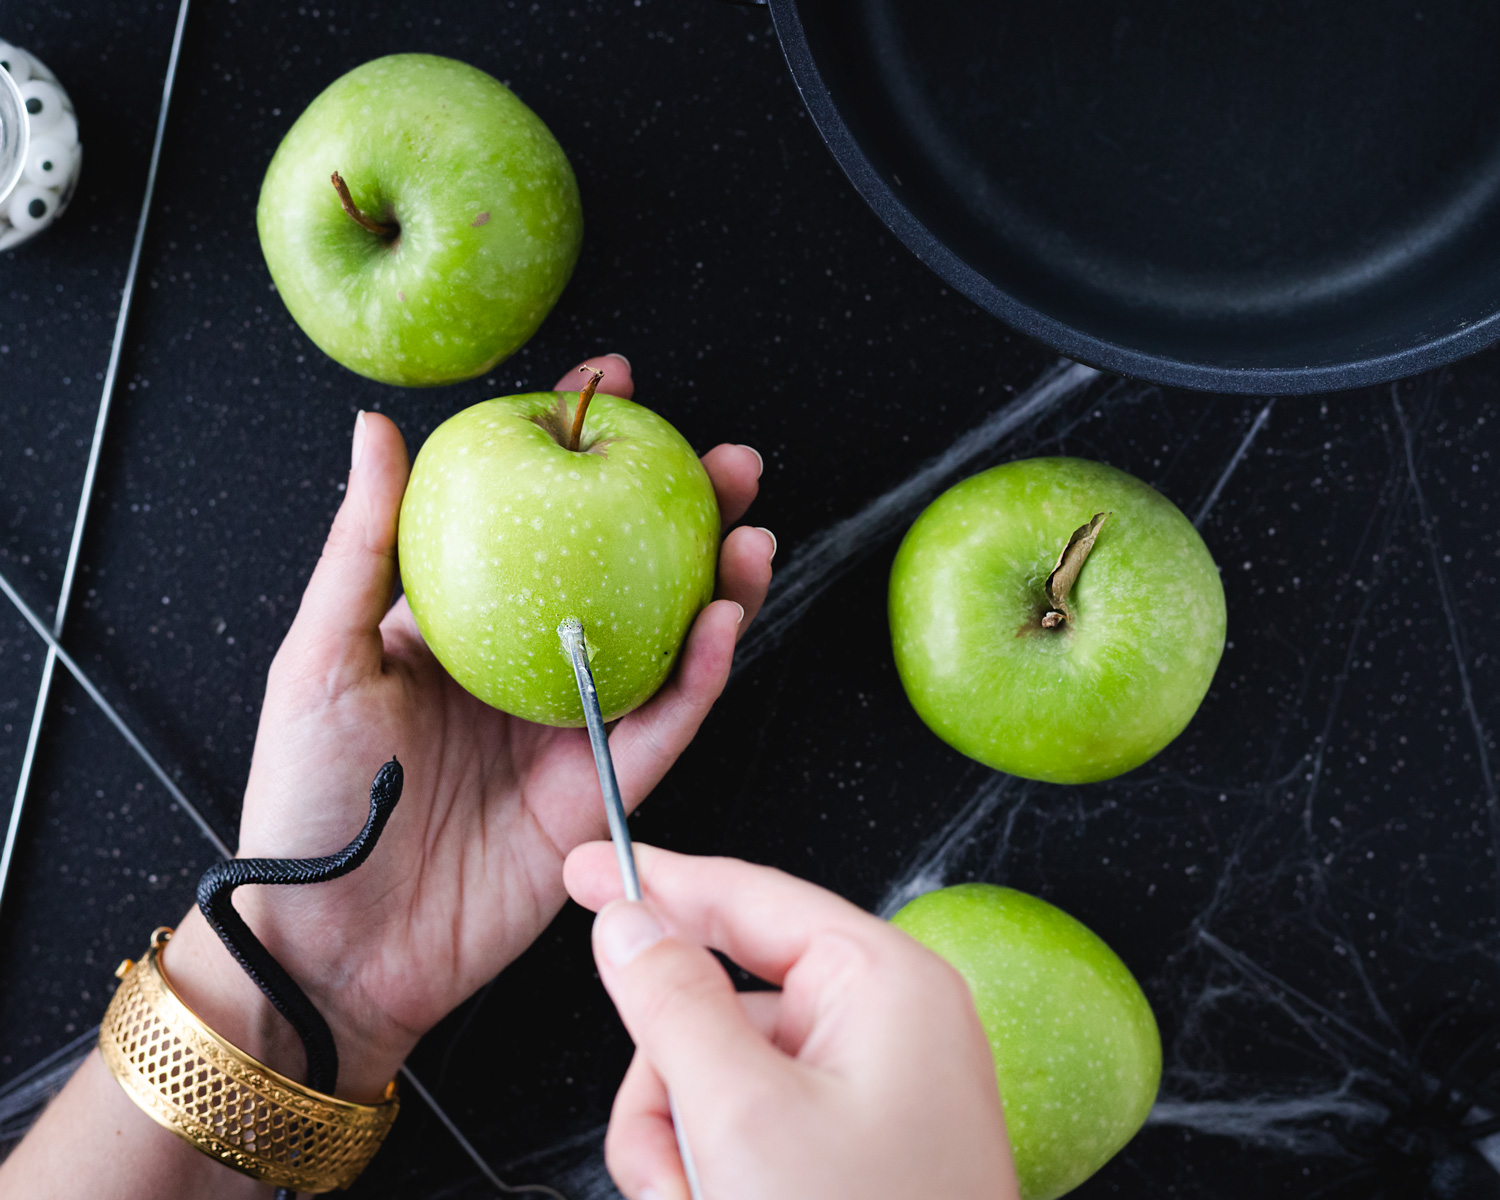 Candy apples that have been soaked in alcohol for a boozy adult Halloween treat that will be sure to bewitch your guests. These apples are dipped in a black and edible glitter purple candy coating. #ElleTalk ElleTalk #Halloween #HalloweenRecipe #AppleRecipe #BoozyRecipe #BoozyTreat #ApplePucker #CandyApple